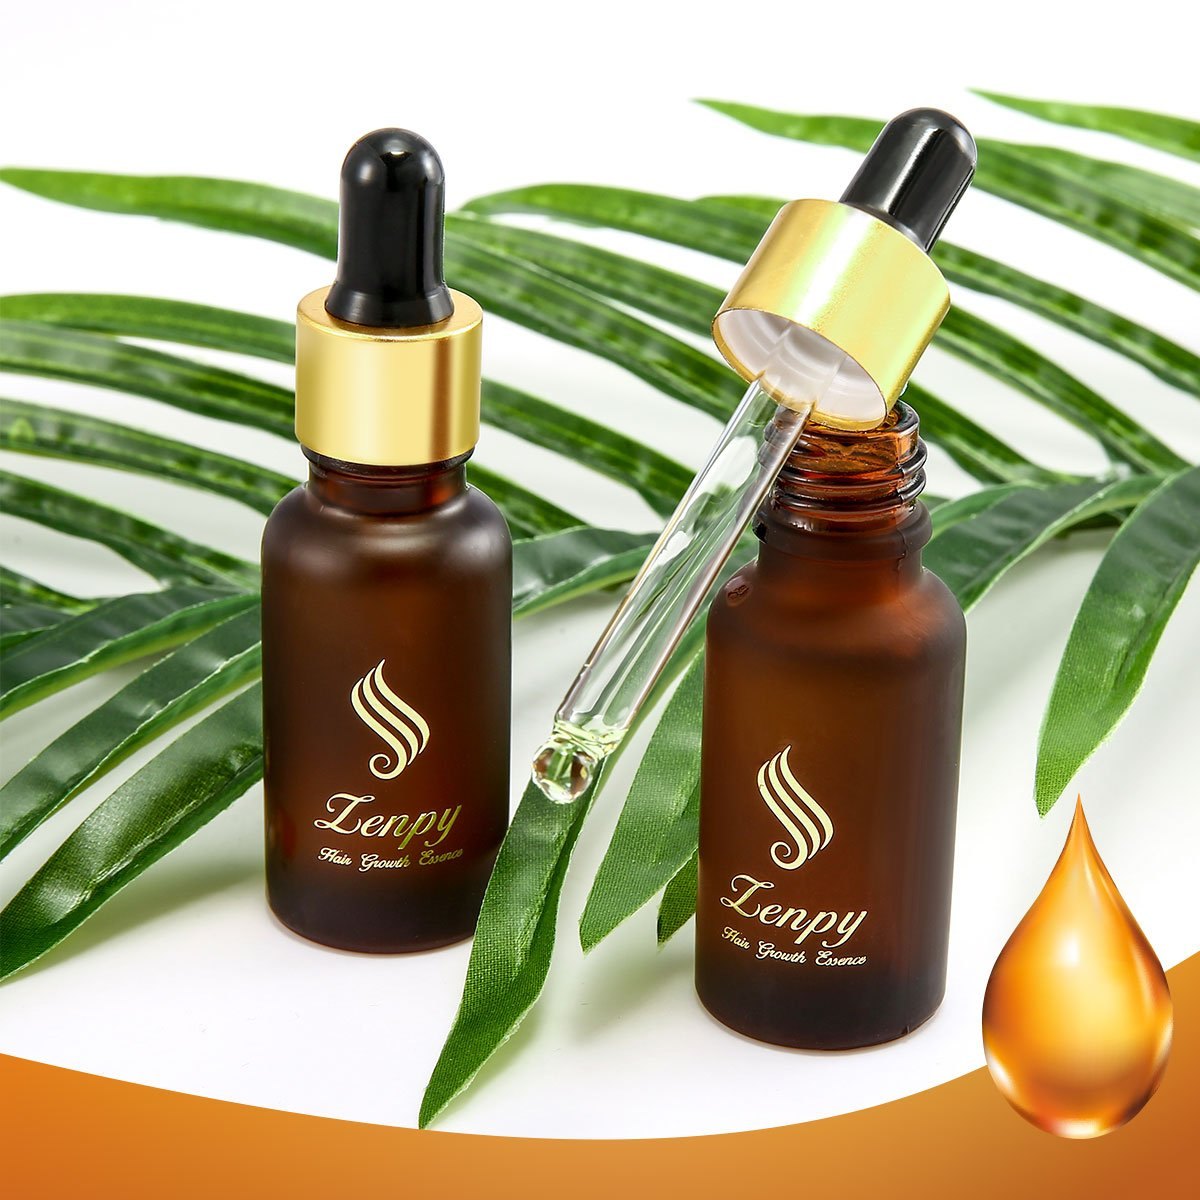 Zenpy Hair Growth Essence Oil Strengthens Hair Roots Grow Longer Anti Hair Loss & Hair Thinning Treatment Hair Serum Professional Hair Care Styling Products -20ml by Zenpy (Image #5)